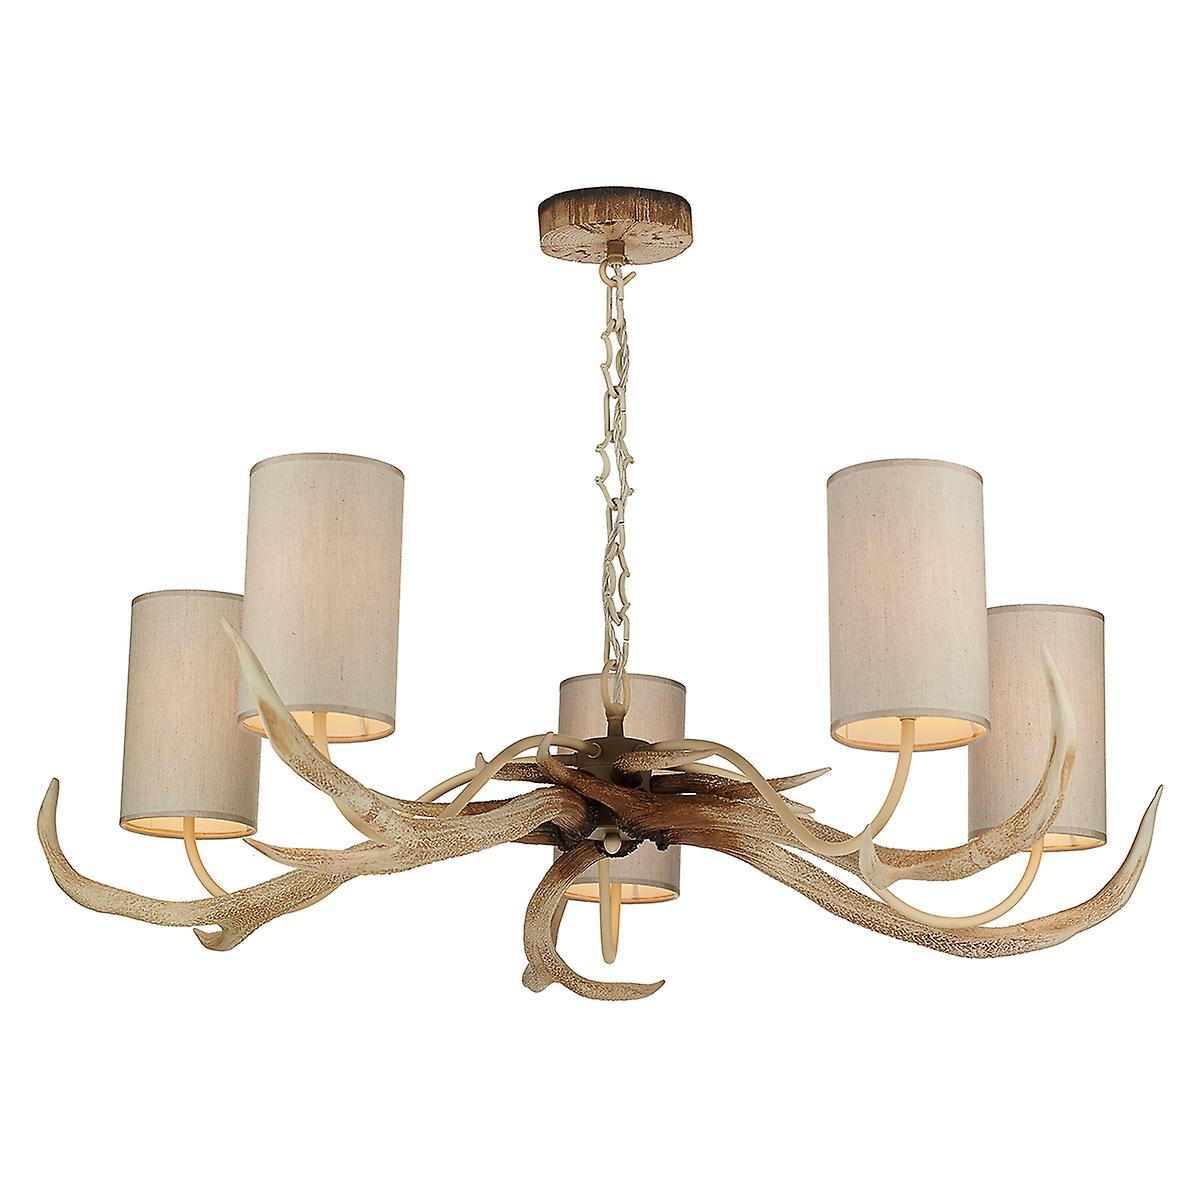 David Hunt ANT0549 Antler 5 Light Bleached Pendant - Shades Included